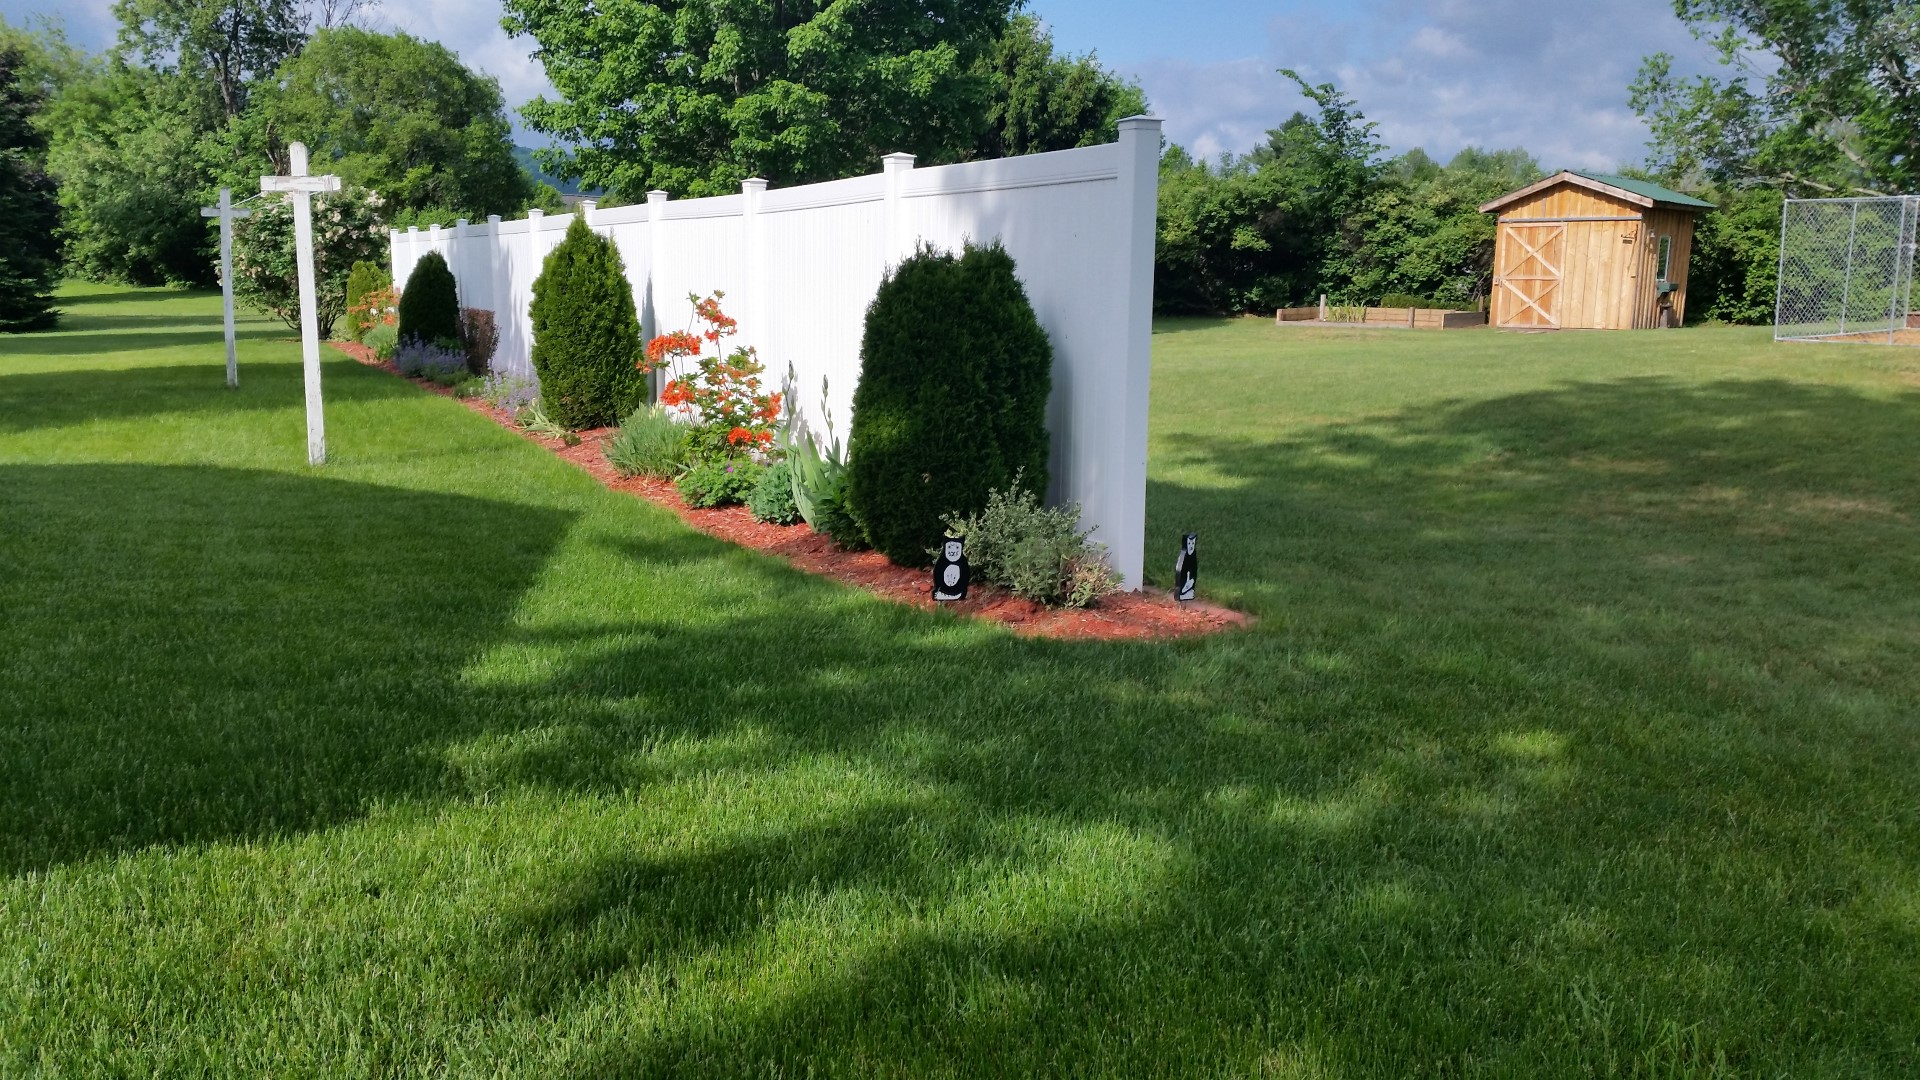 Oneonta 2011. We installed this 6' Vinyl fence to create some backyard privacy. See how the white background accents the plants and shrubs.